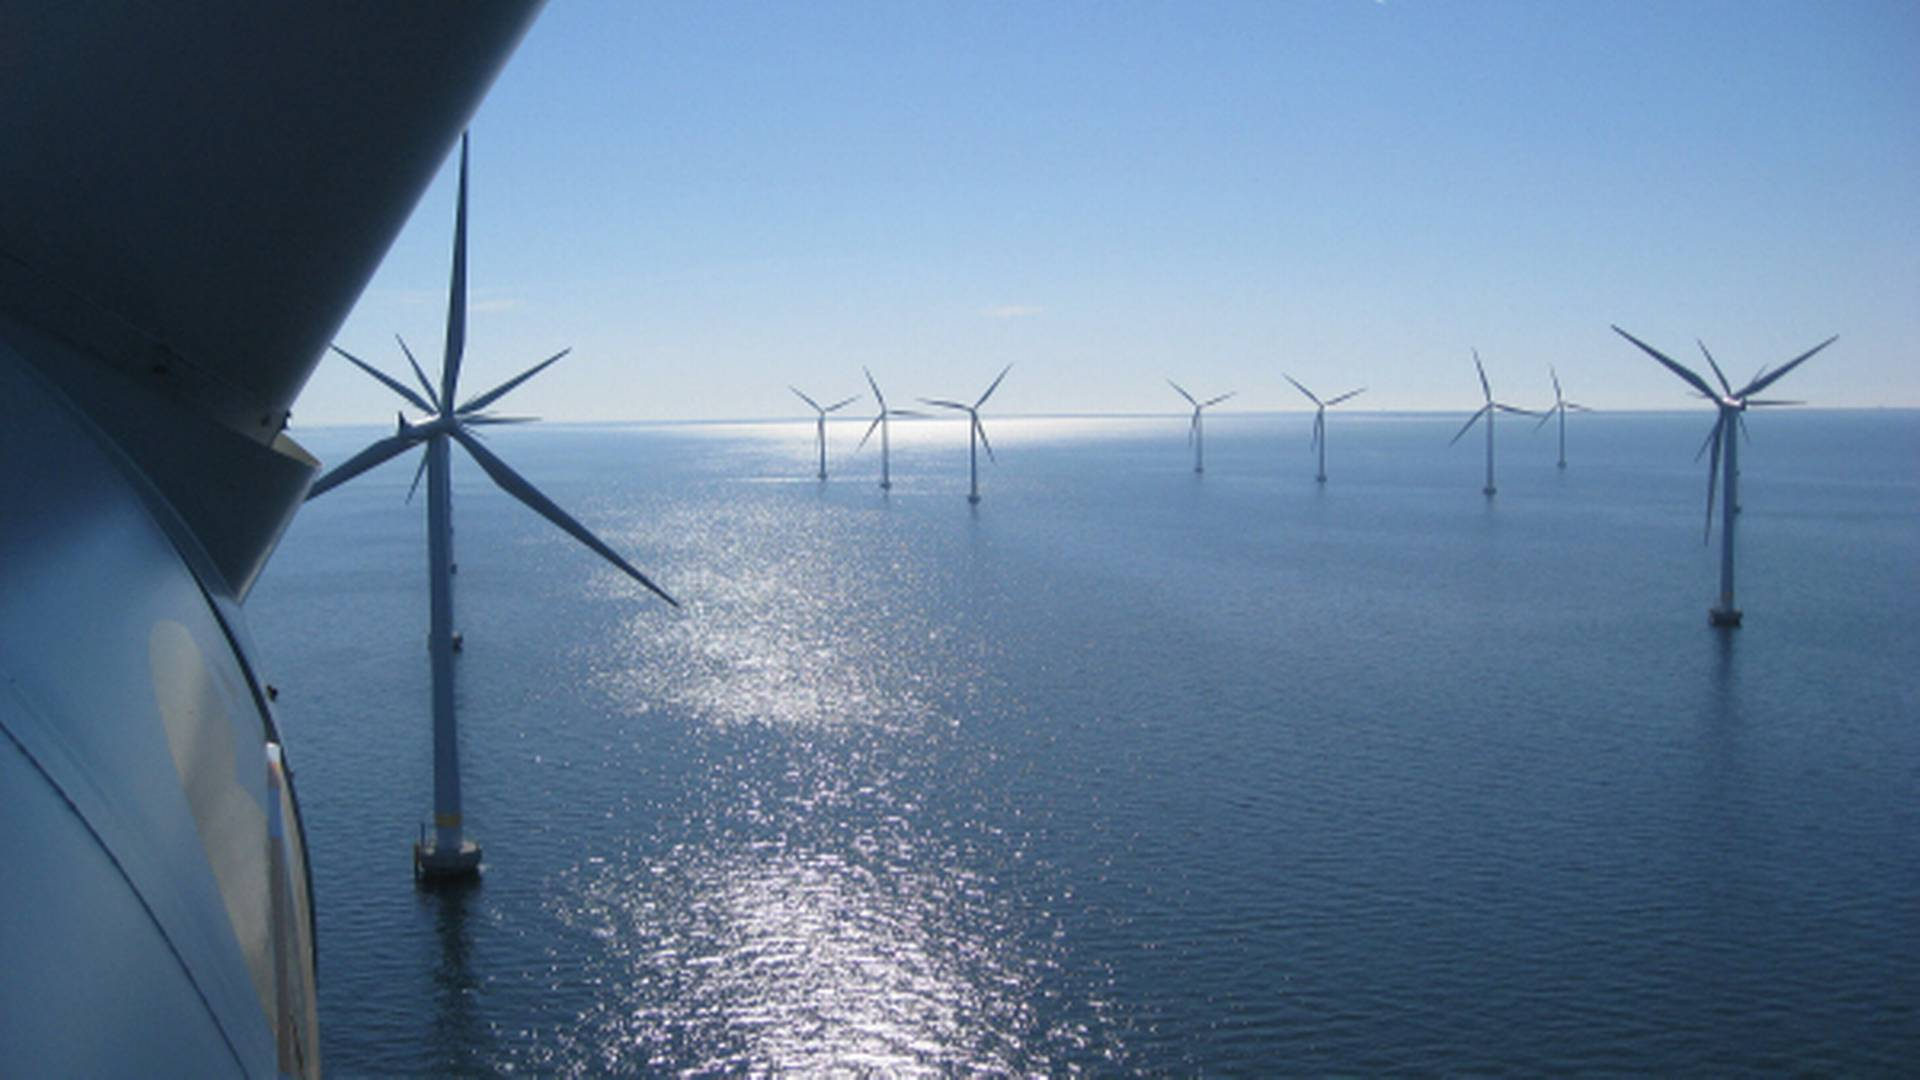 Masdar Abu Dhabi Future Energy Co. to buy half of Statoil's shares in Dudgeon offshore wind park